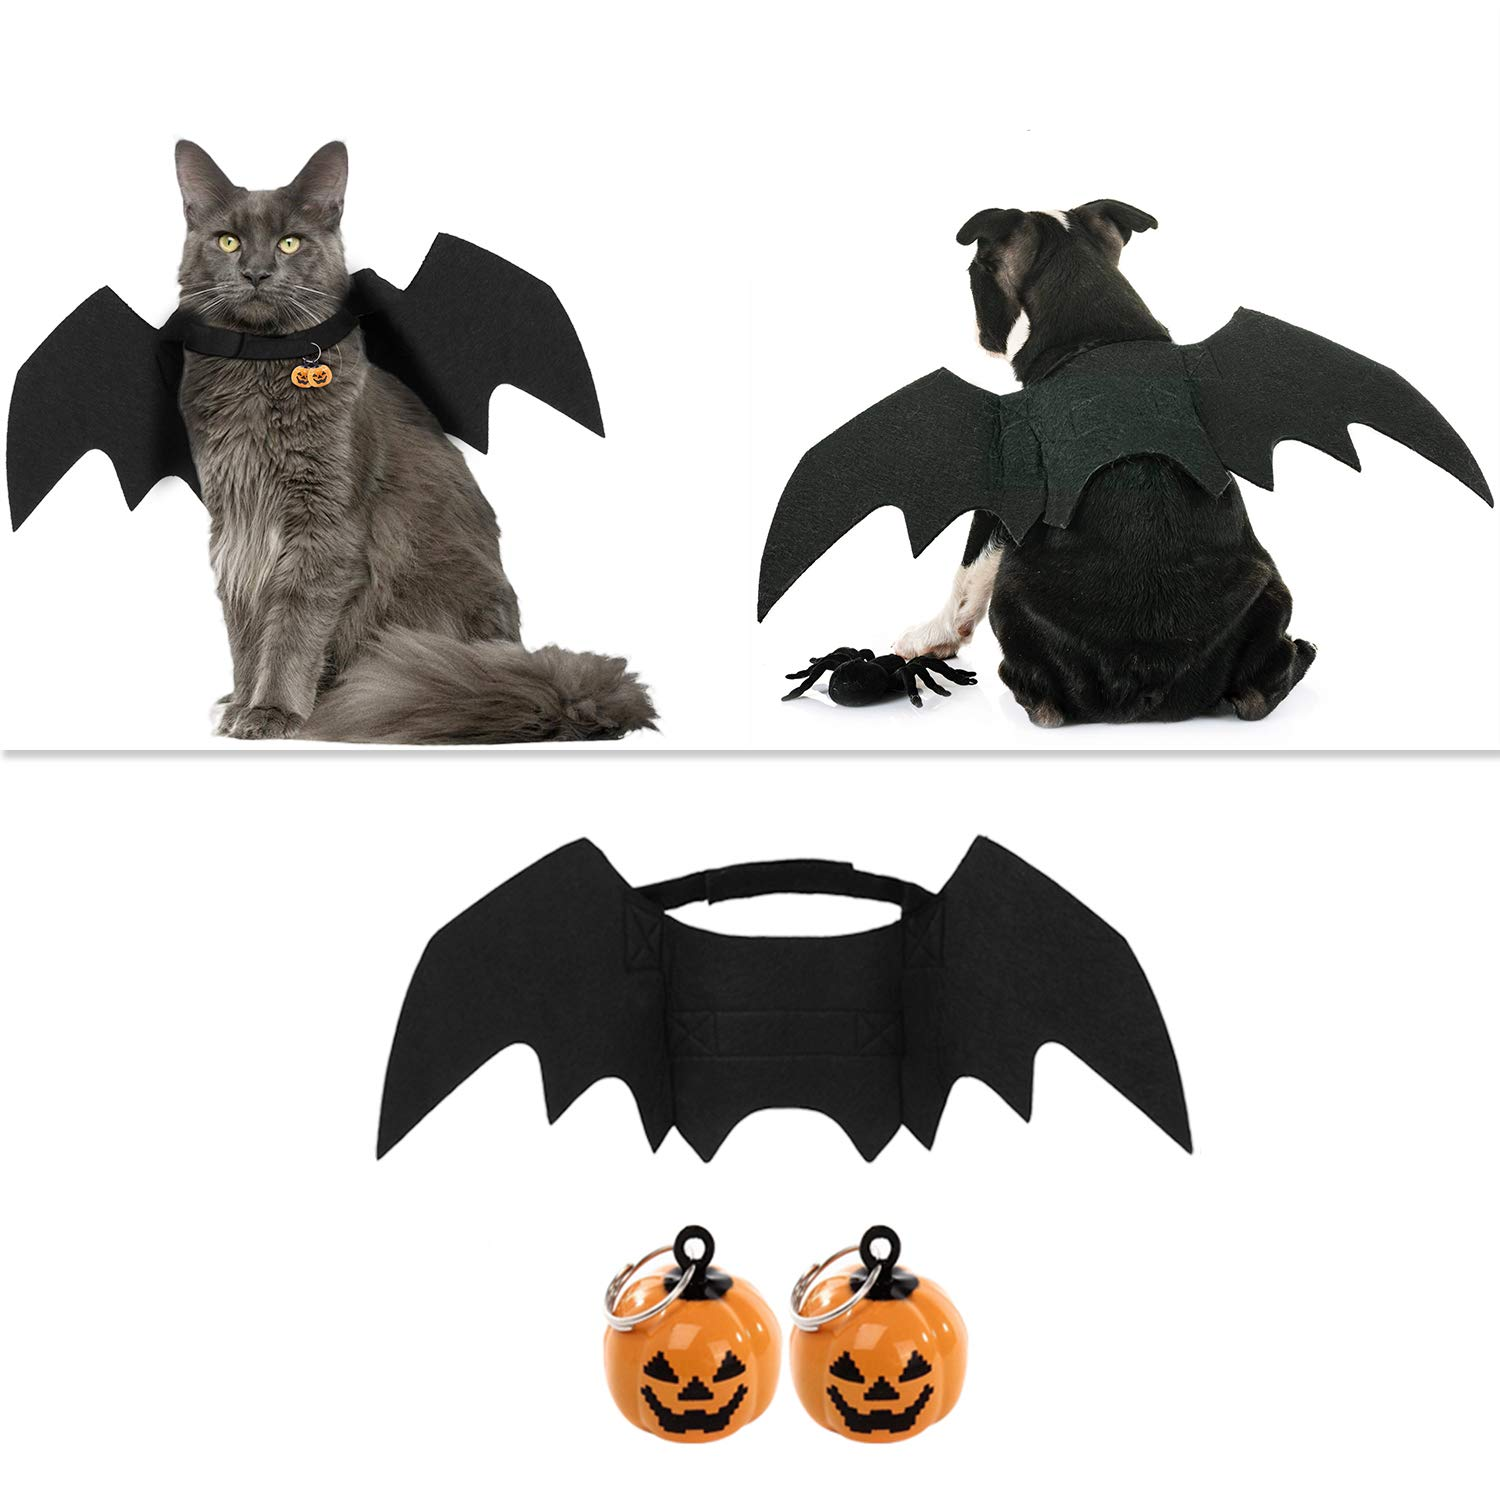 Outgeek Halloween Pet Costume Bat Wings Cosplay Dog Costume Cat Costume for Party